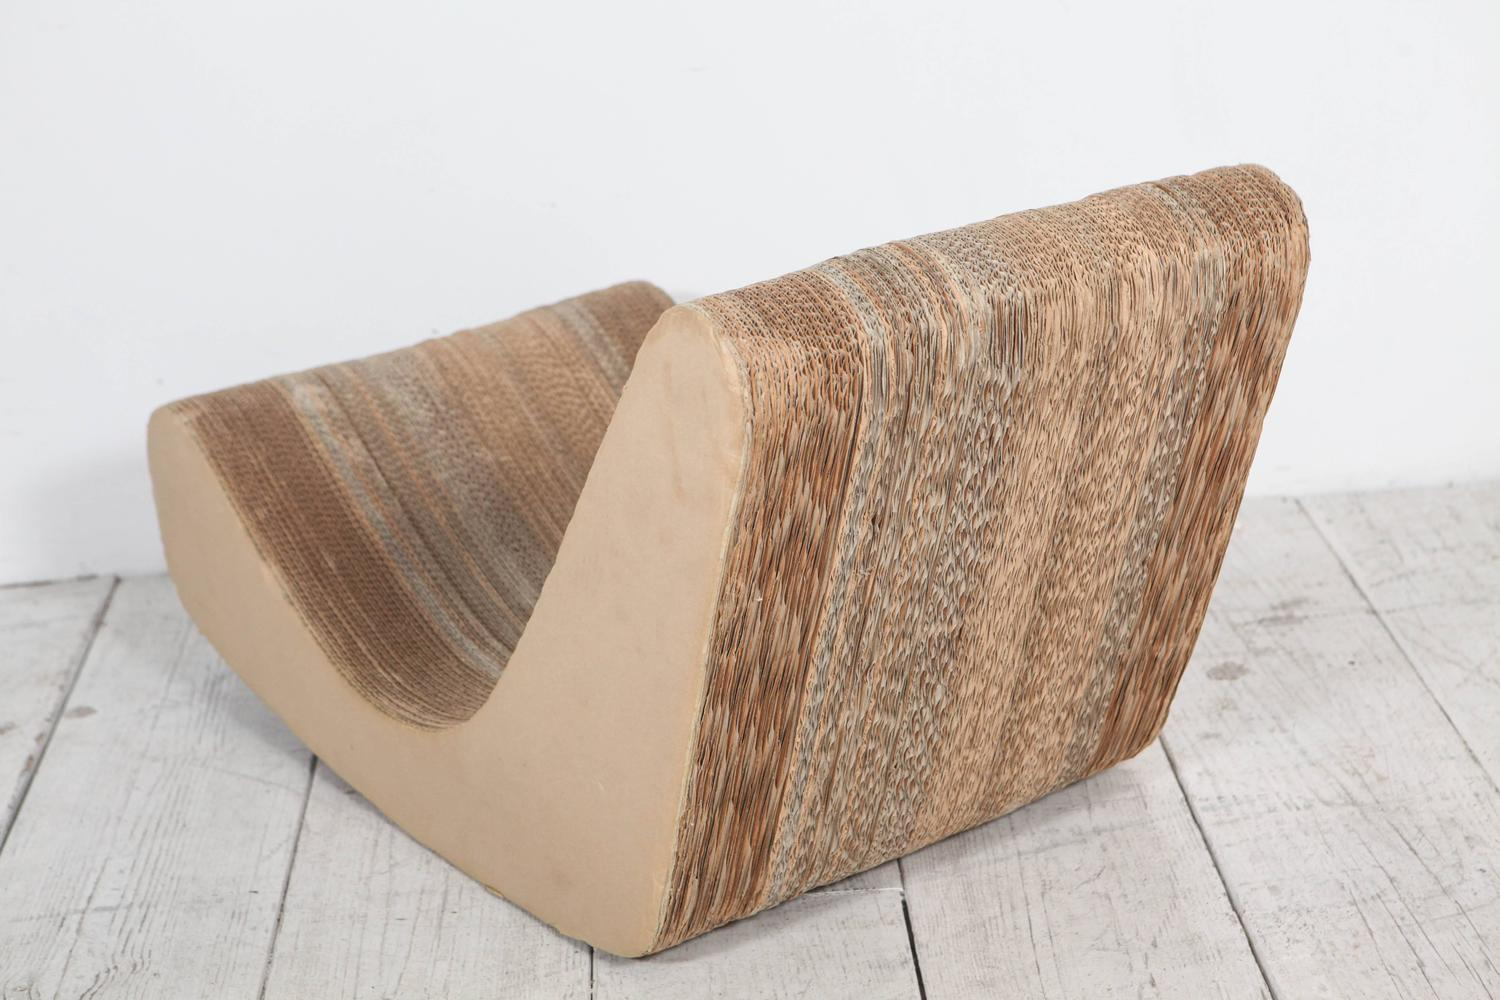 frank gehry cardboard chair slip cover corrugated low rocker in the style of